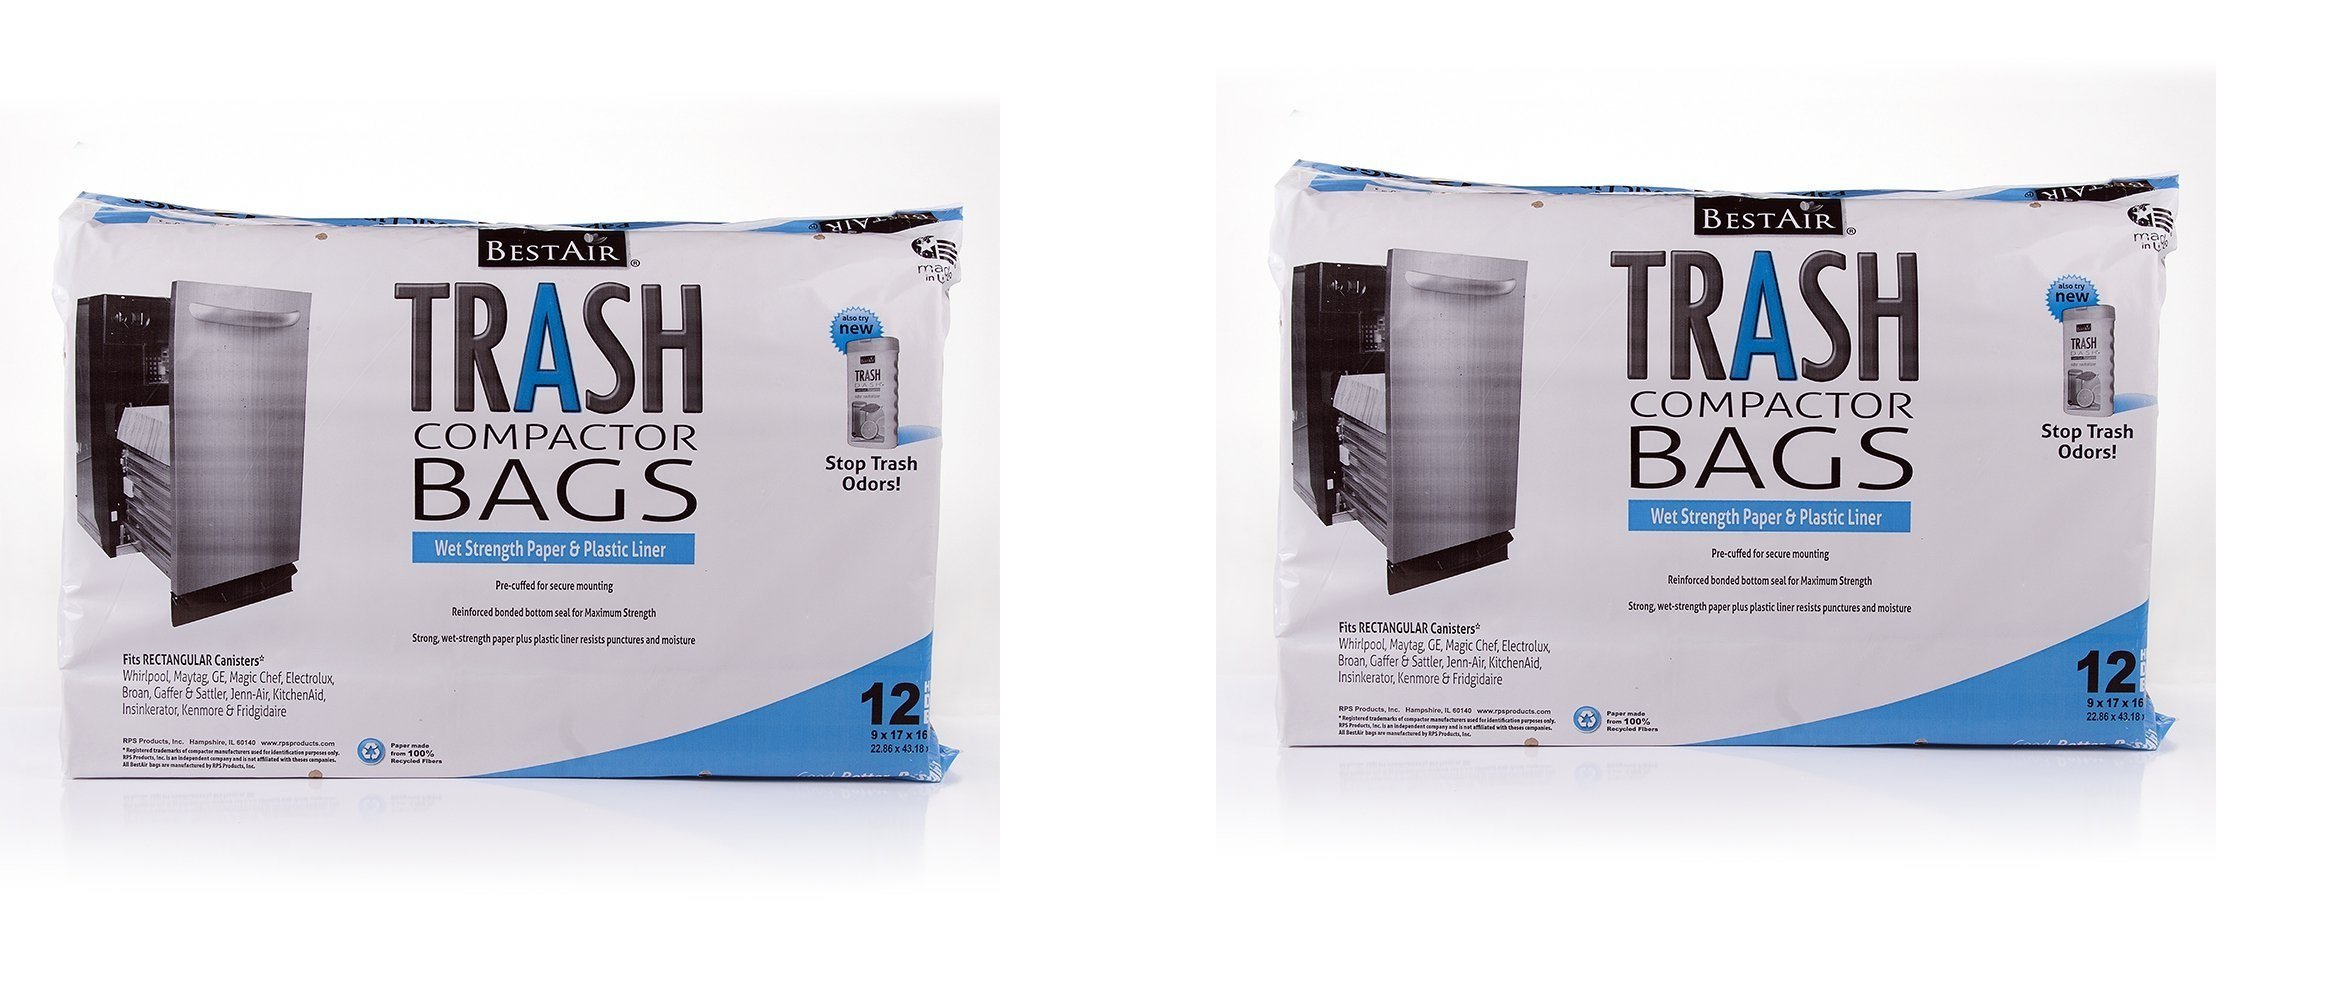 Trash Compactor Bags (2 Pack)